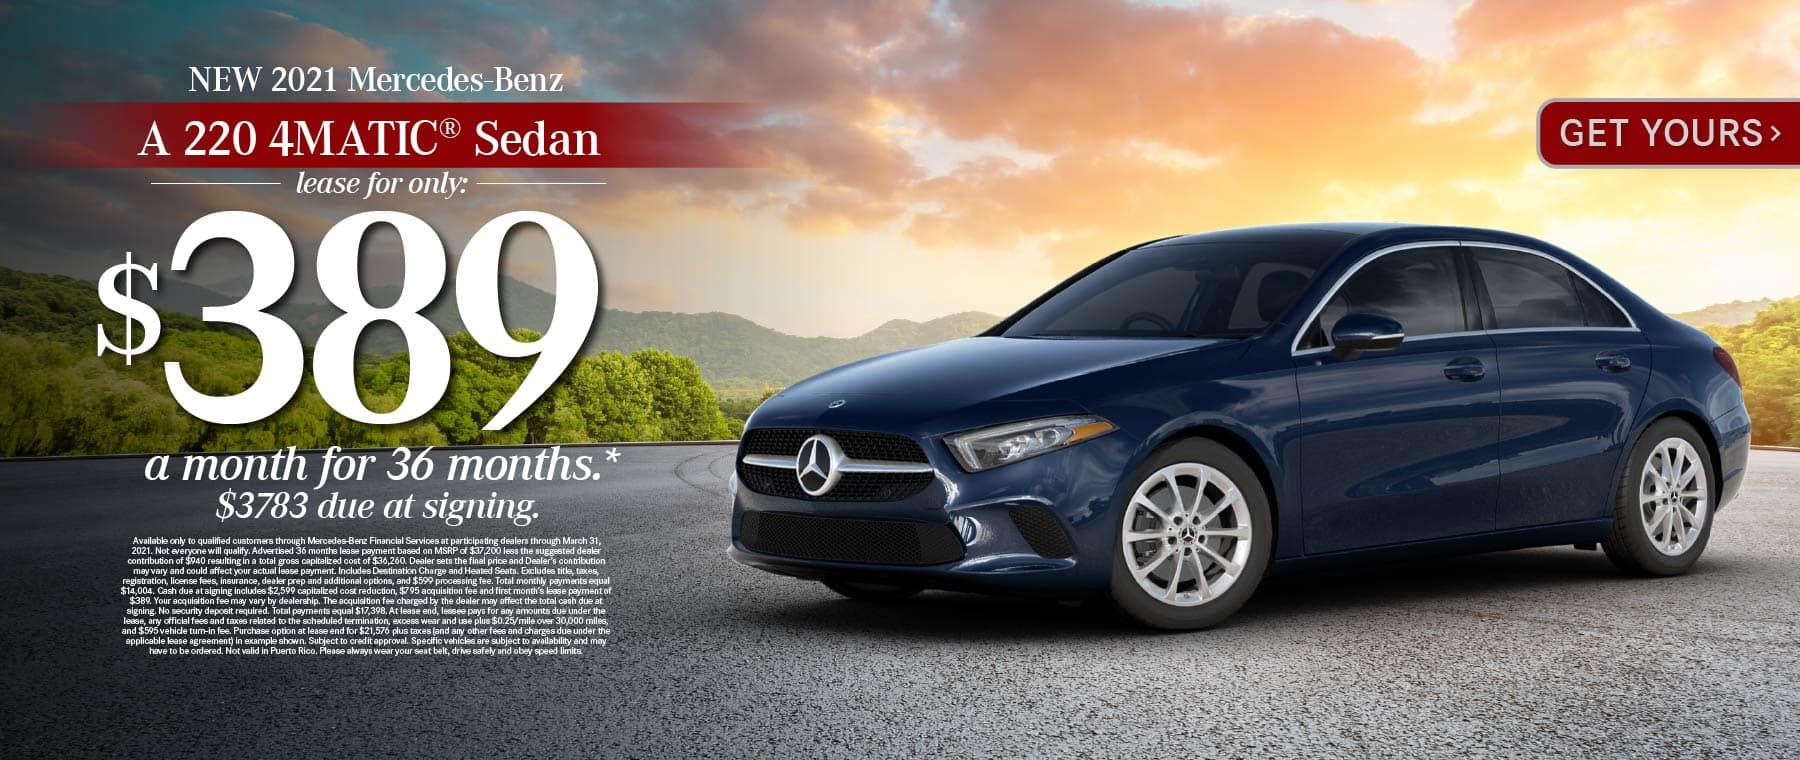 New 2021 Mercedes-Benz A 220 4MATIC® Lease for only: $389 a month for 36 months. $3783 due at signing. Get Yours.